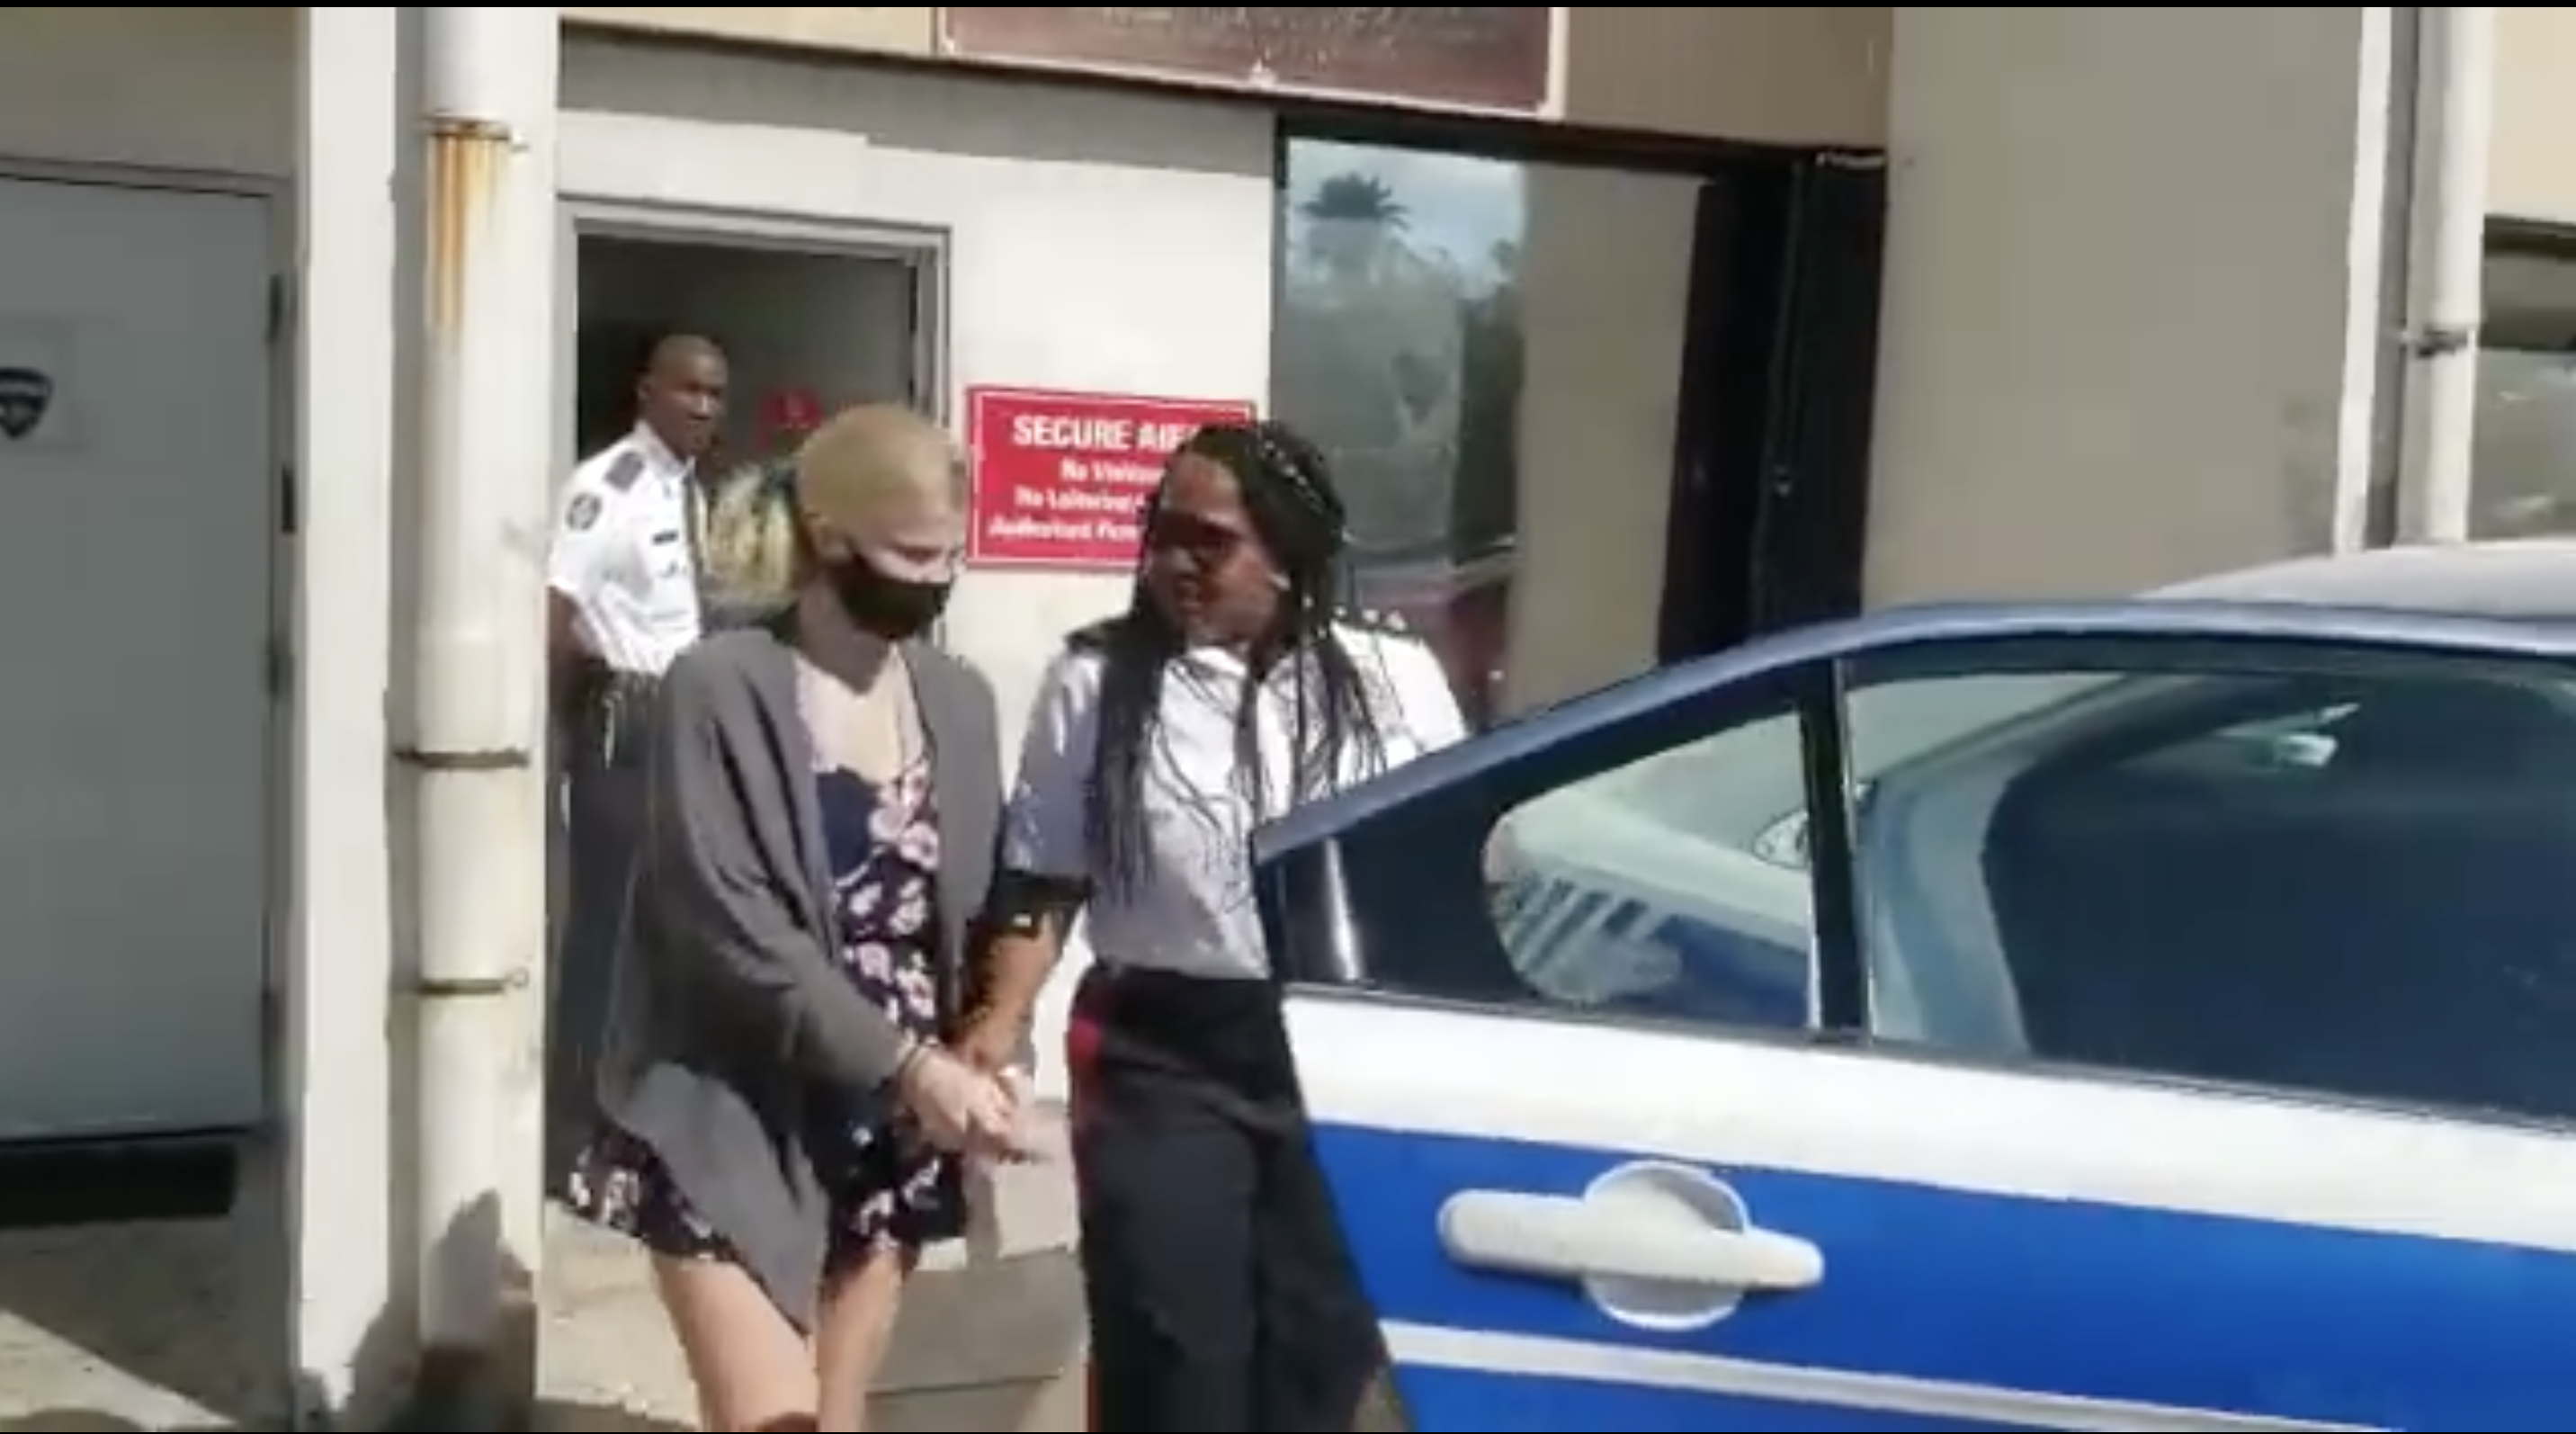 A police officer walks with Skylar Mack, handcuffed and wearing a face mask, to a police car